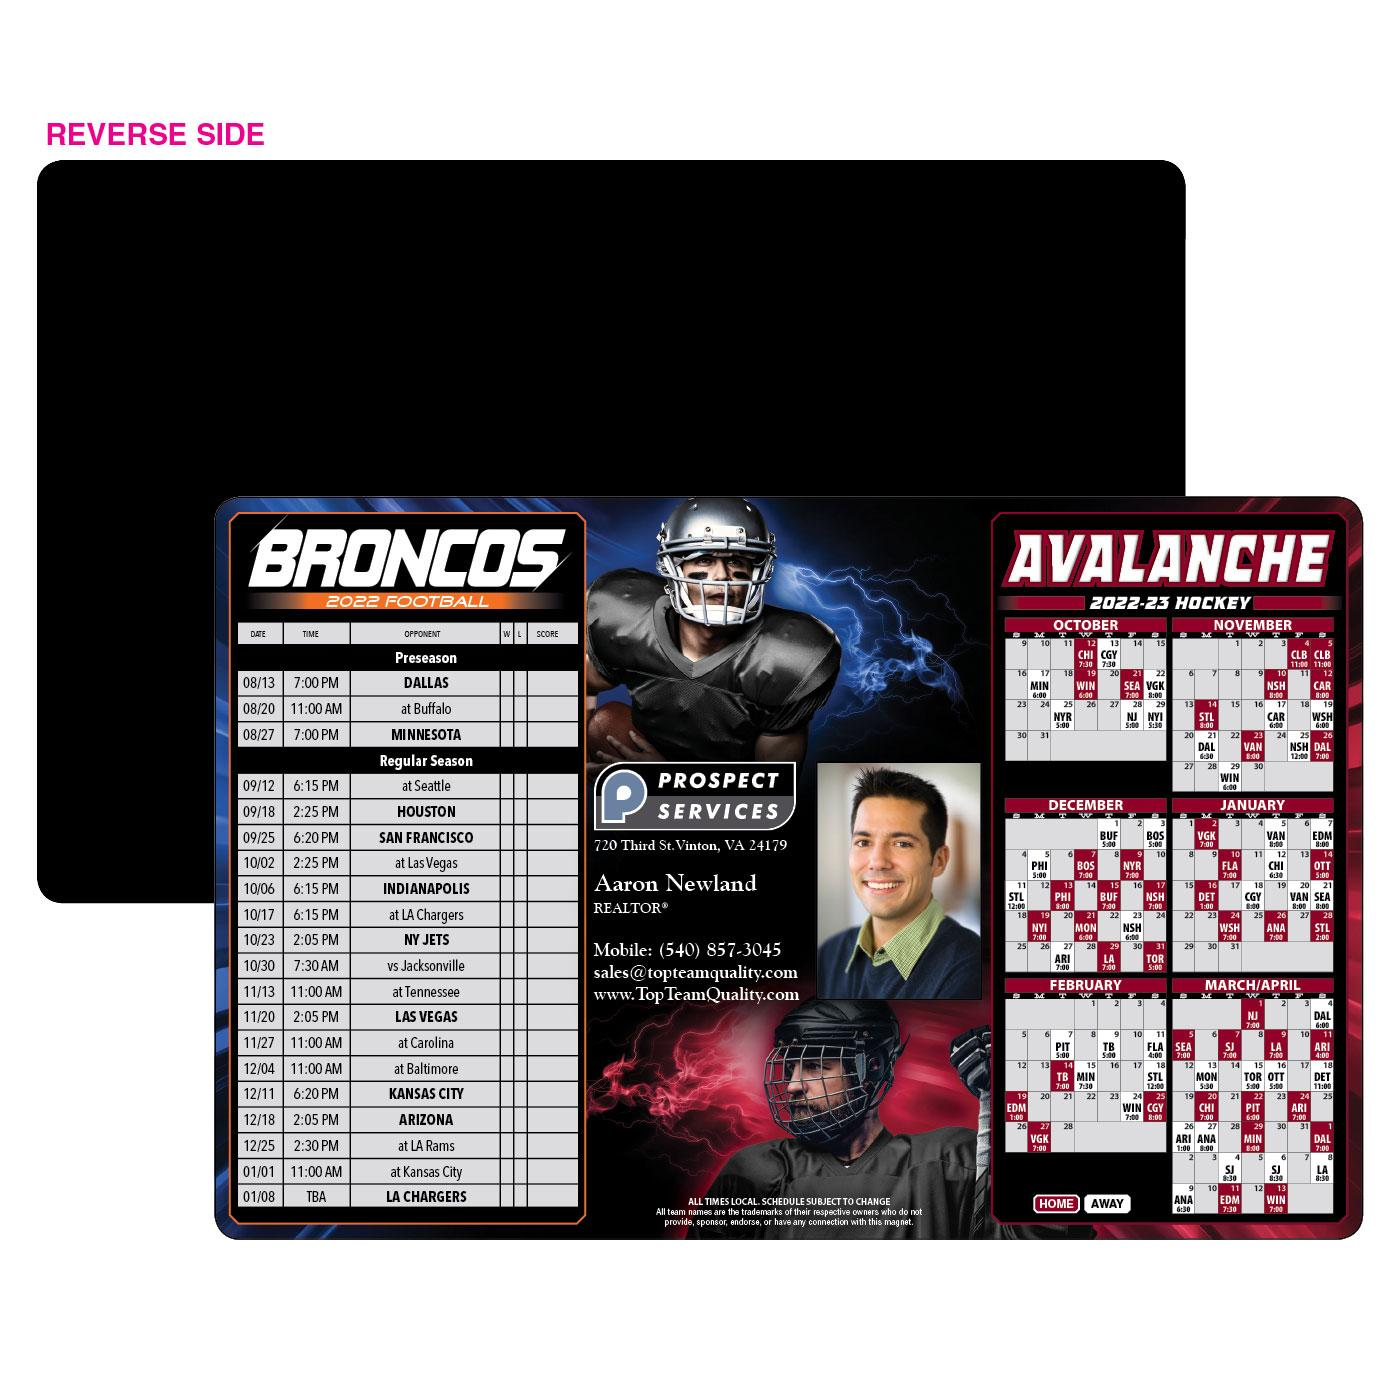 Broncos Avalanche sports schedule